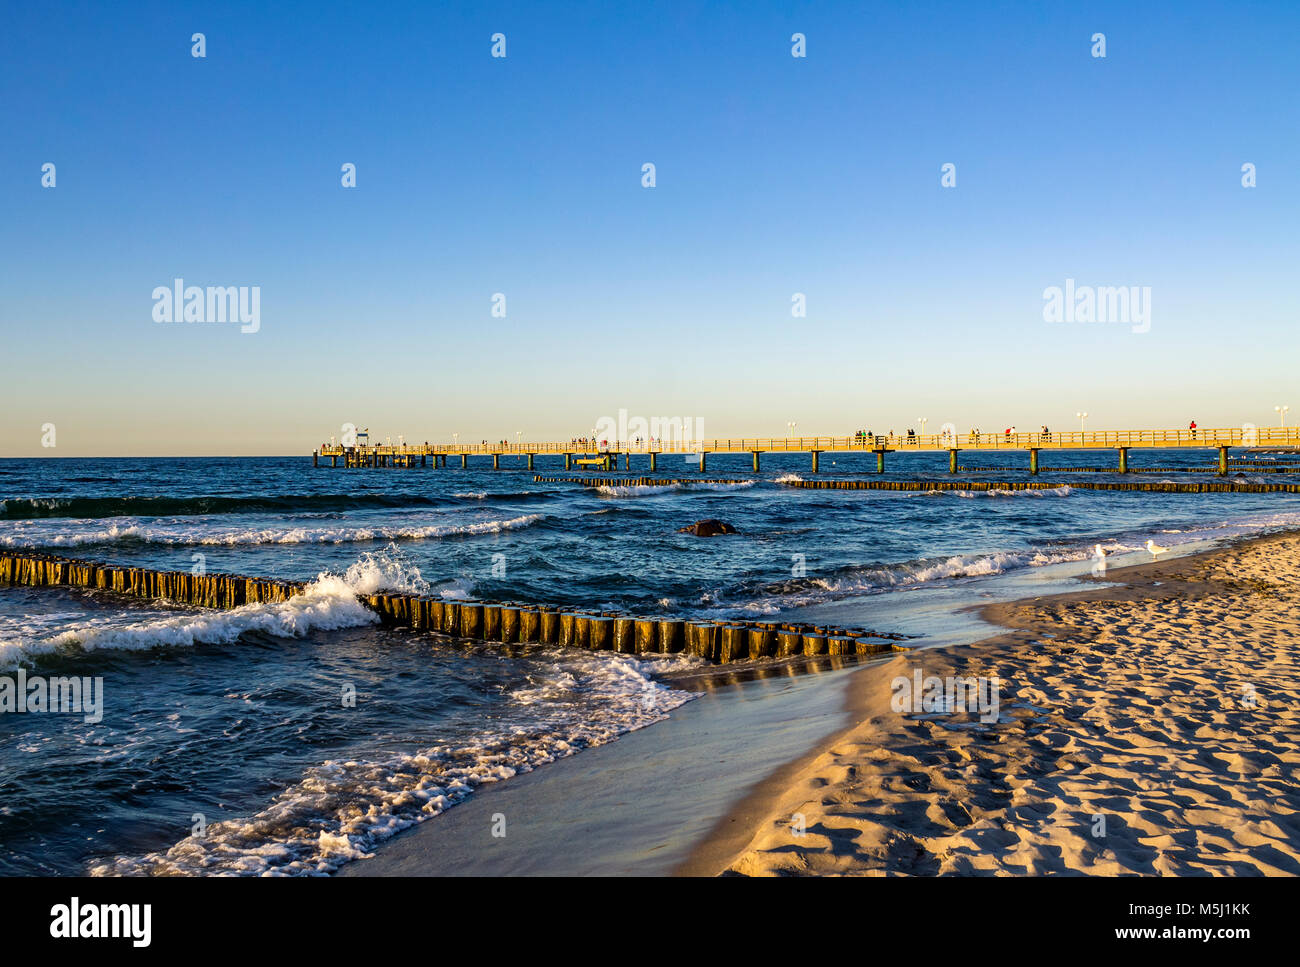 Germany, Mecklenburg-Western Pomerania, Baltic sea seaside resort Kuehlungsborn in the morning, sea bridge Stock Photo